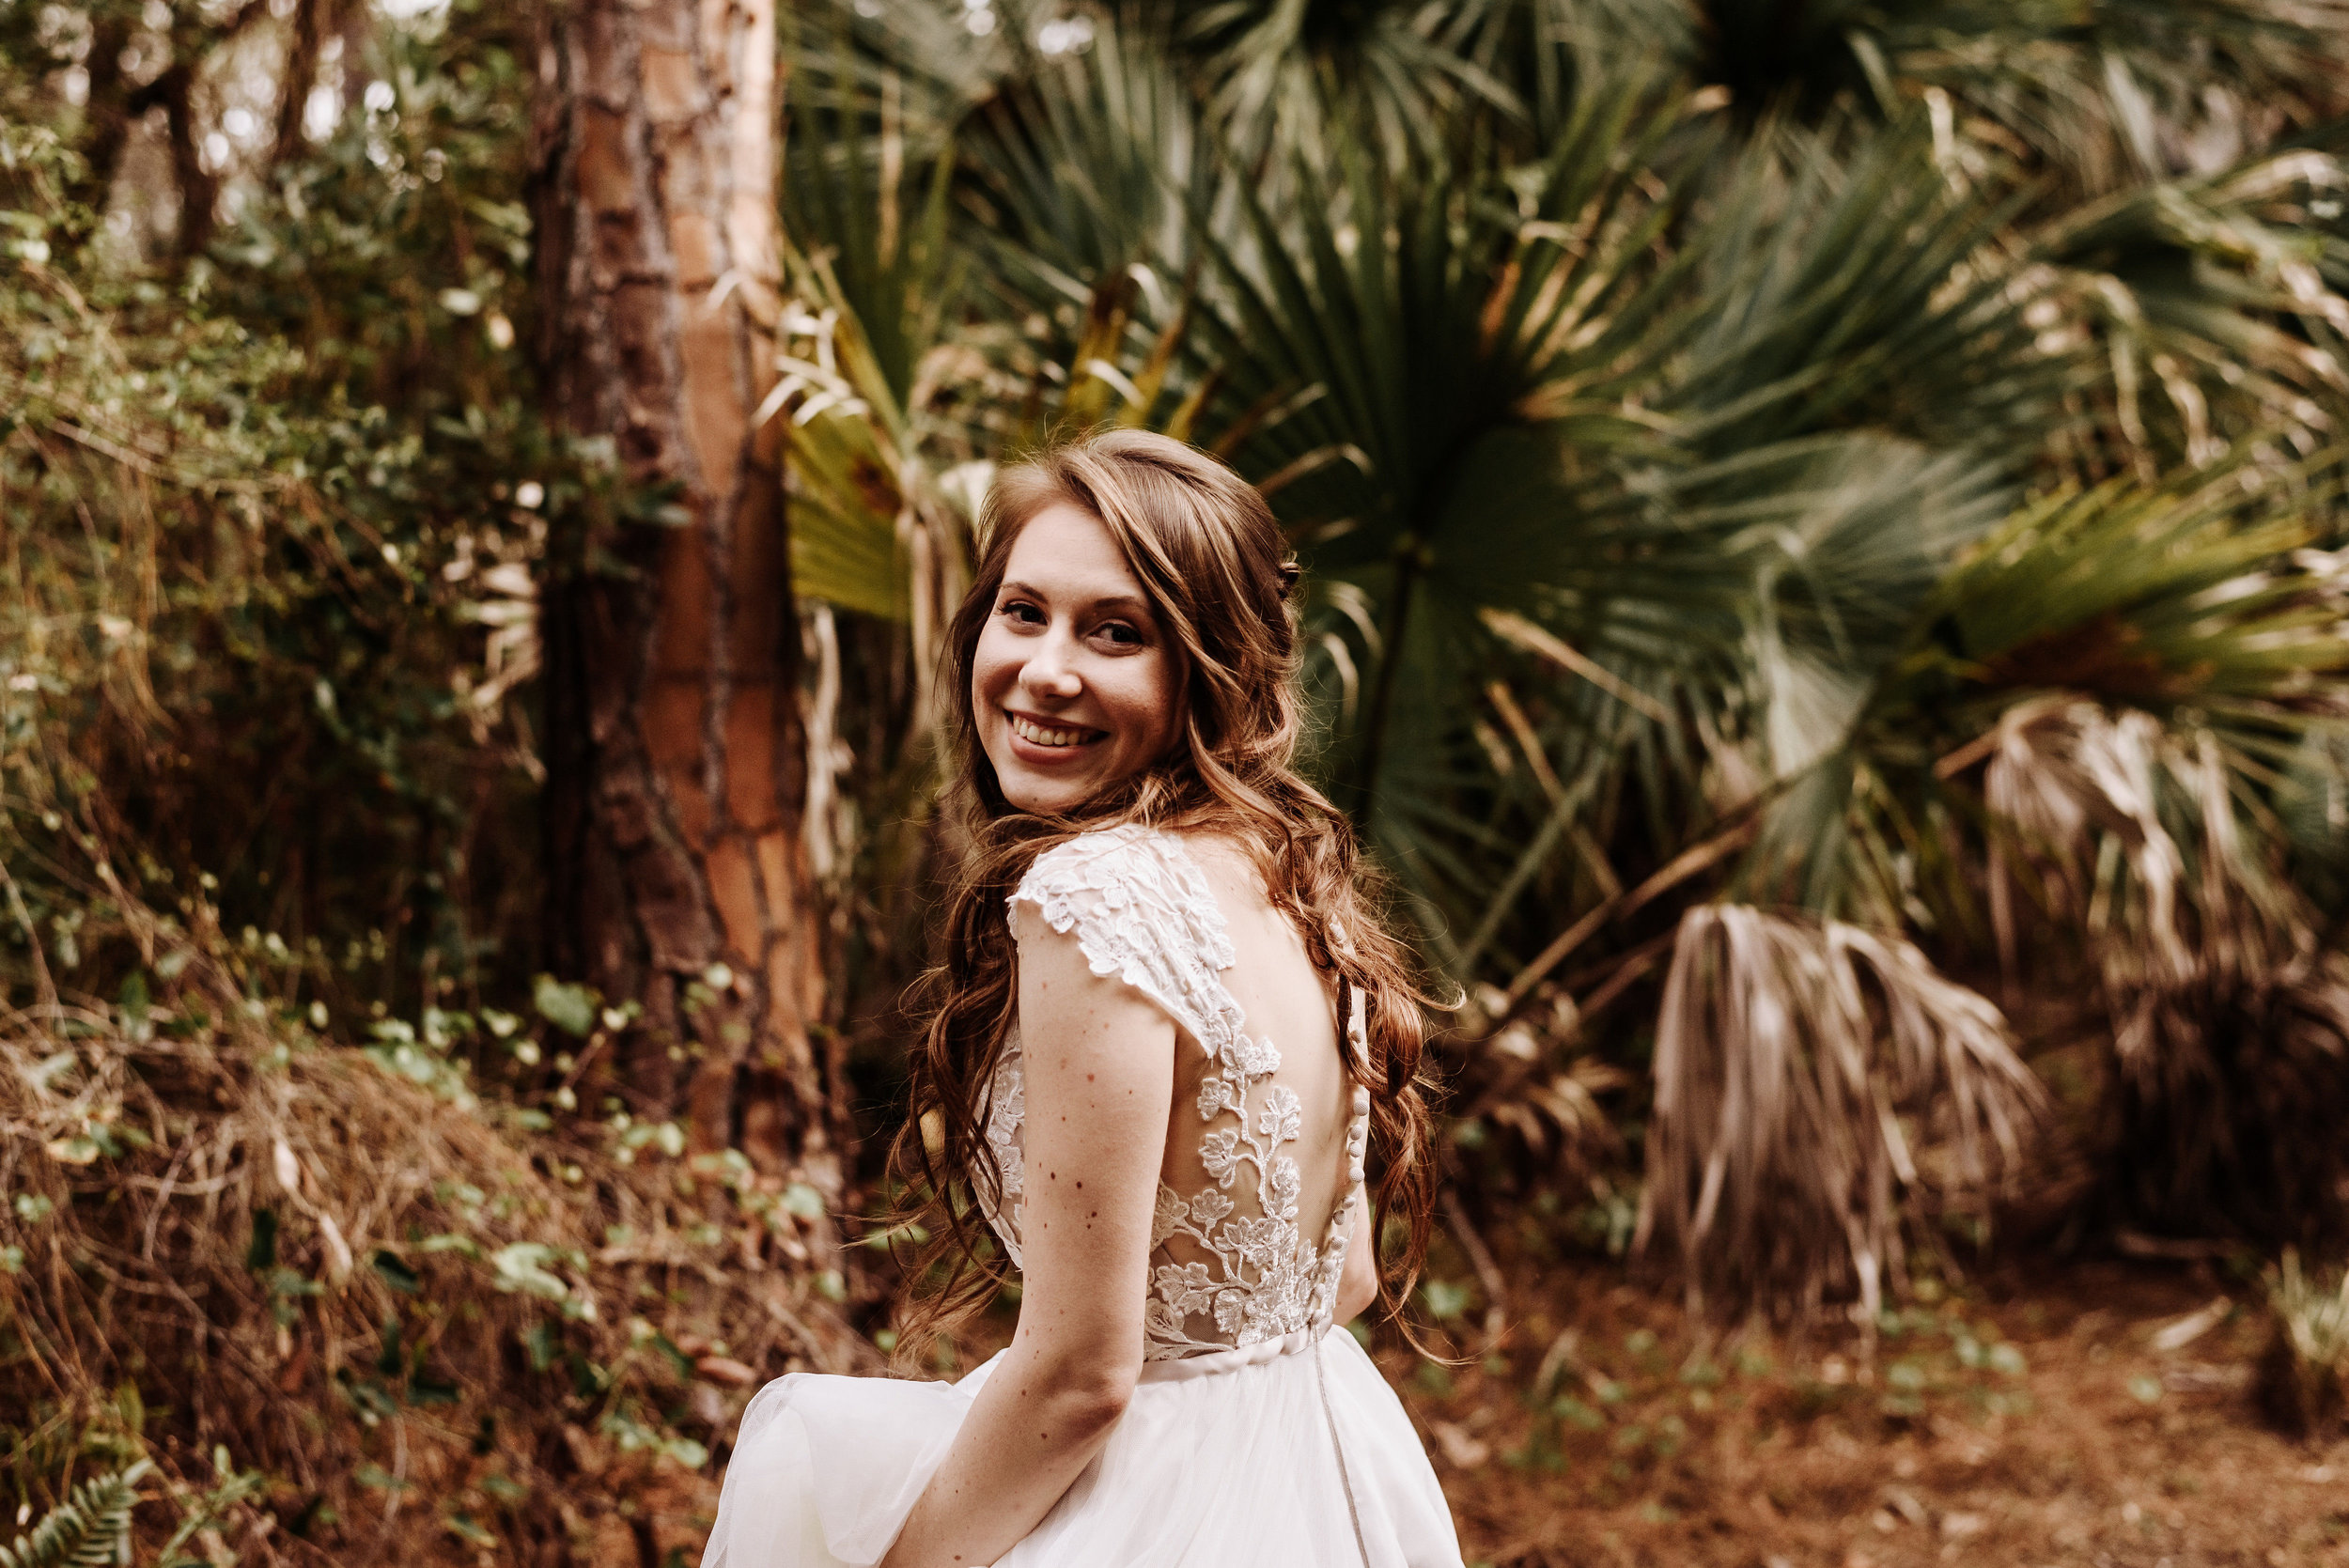 Jess_Micah_Portrait_Session_Wedding_Vero_Beach_Florida_Photography_by_V_0054.jpg